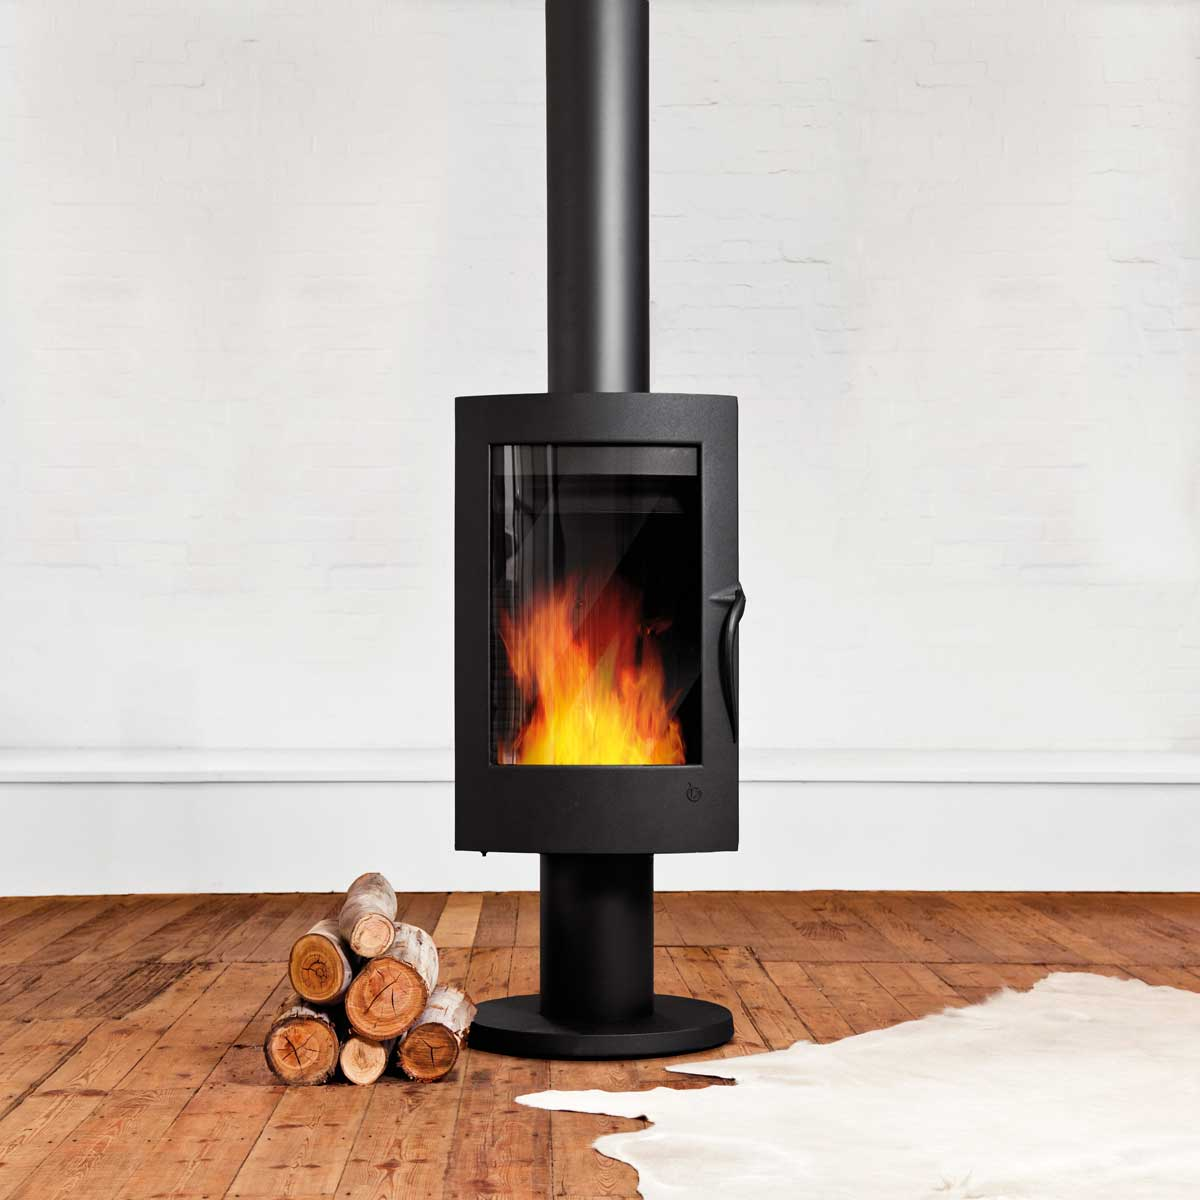 Invicta Pharos wood heater in minimalist room with white walls and timber floor